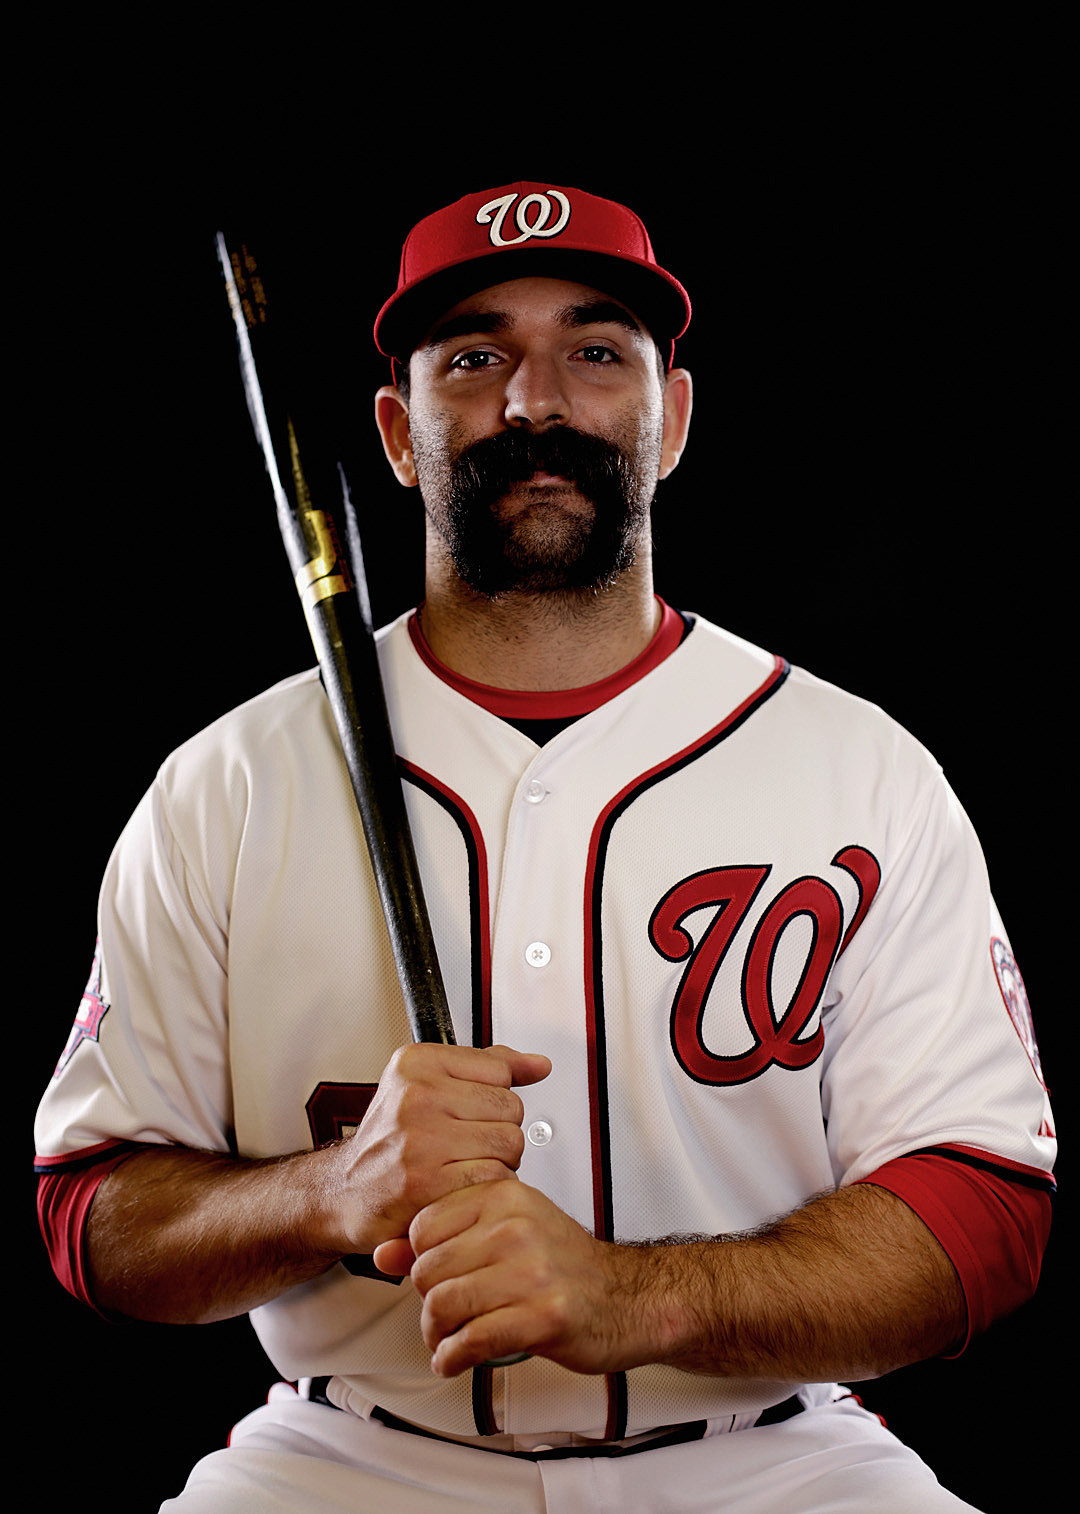 Danny Espinosa mustache and bat